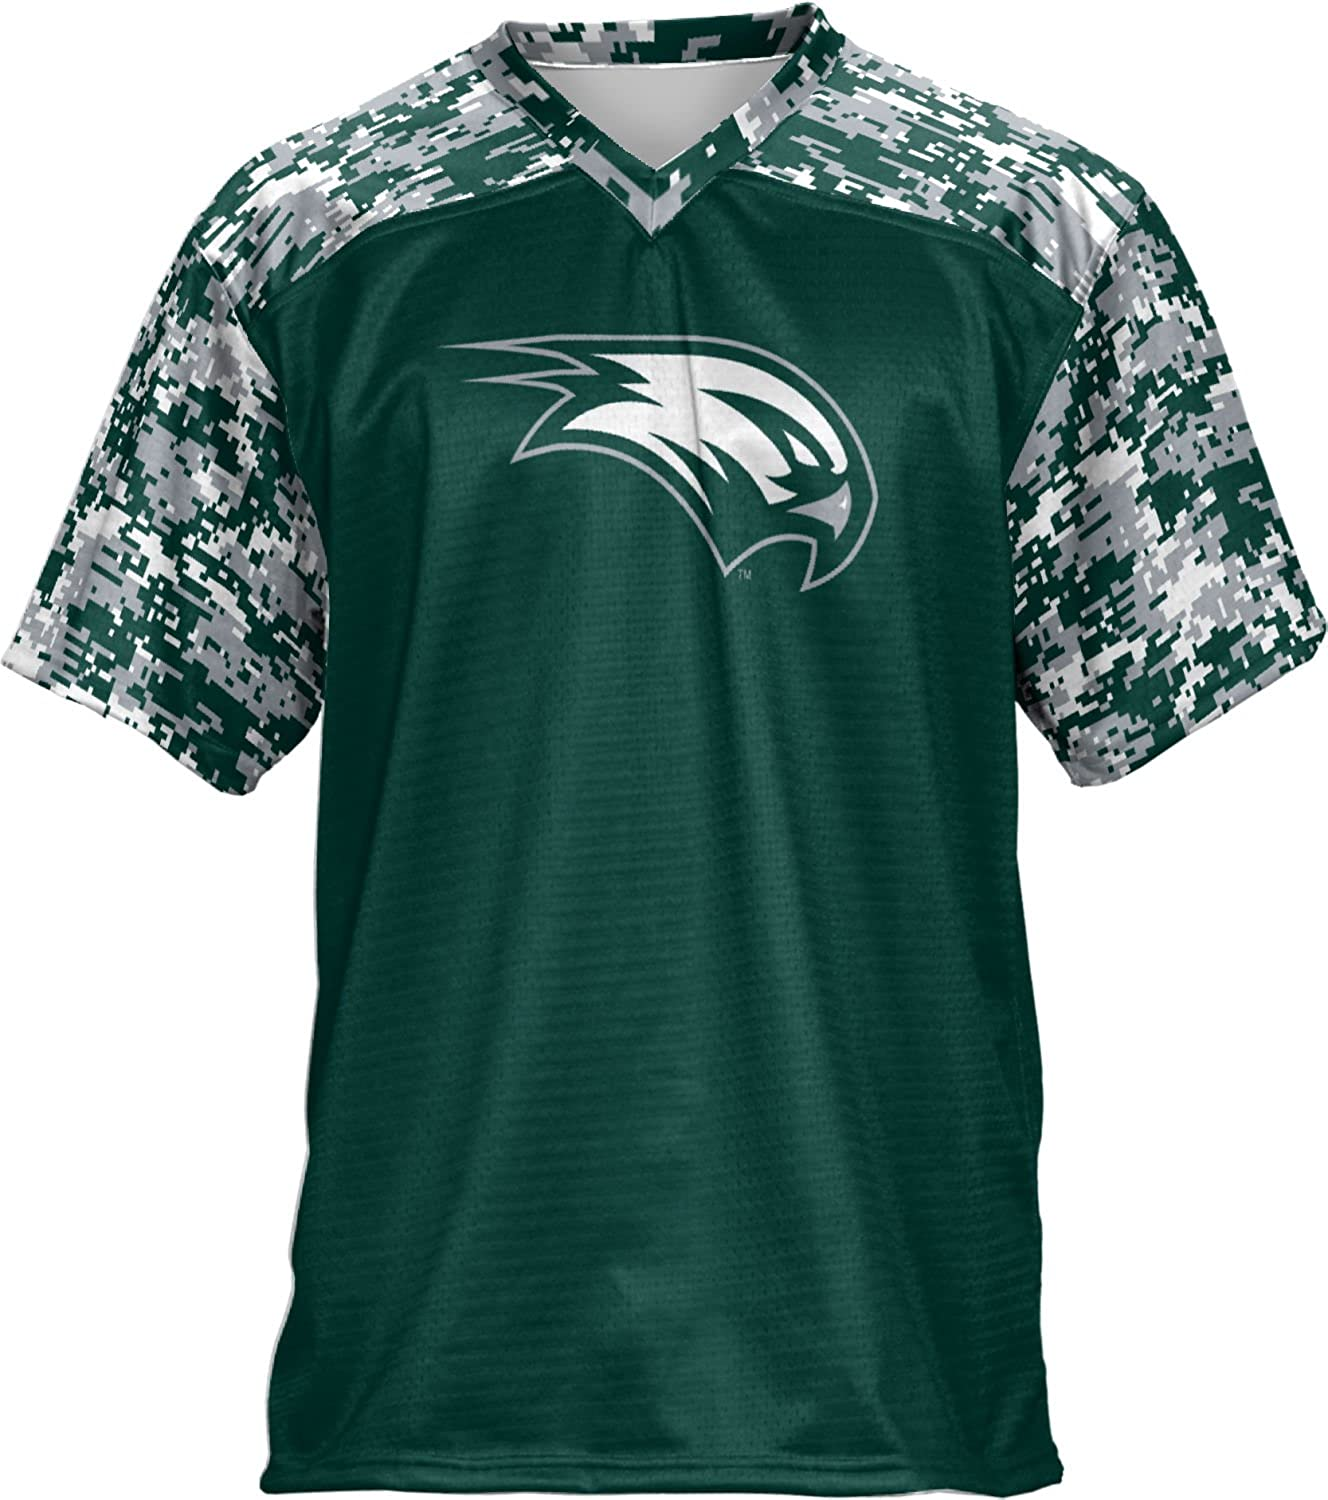 Don't miss the campaign ProSphere Wagner College Boys' Digital Free Shipping New Jersey Football